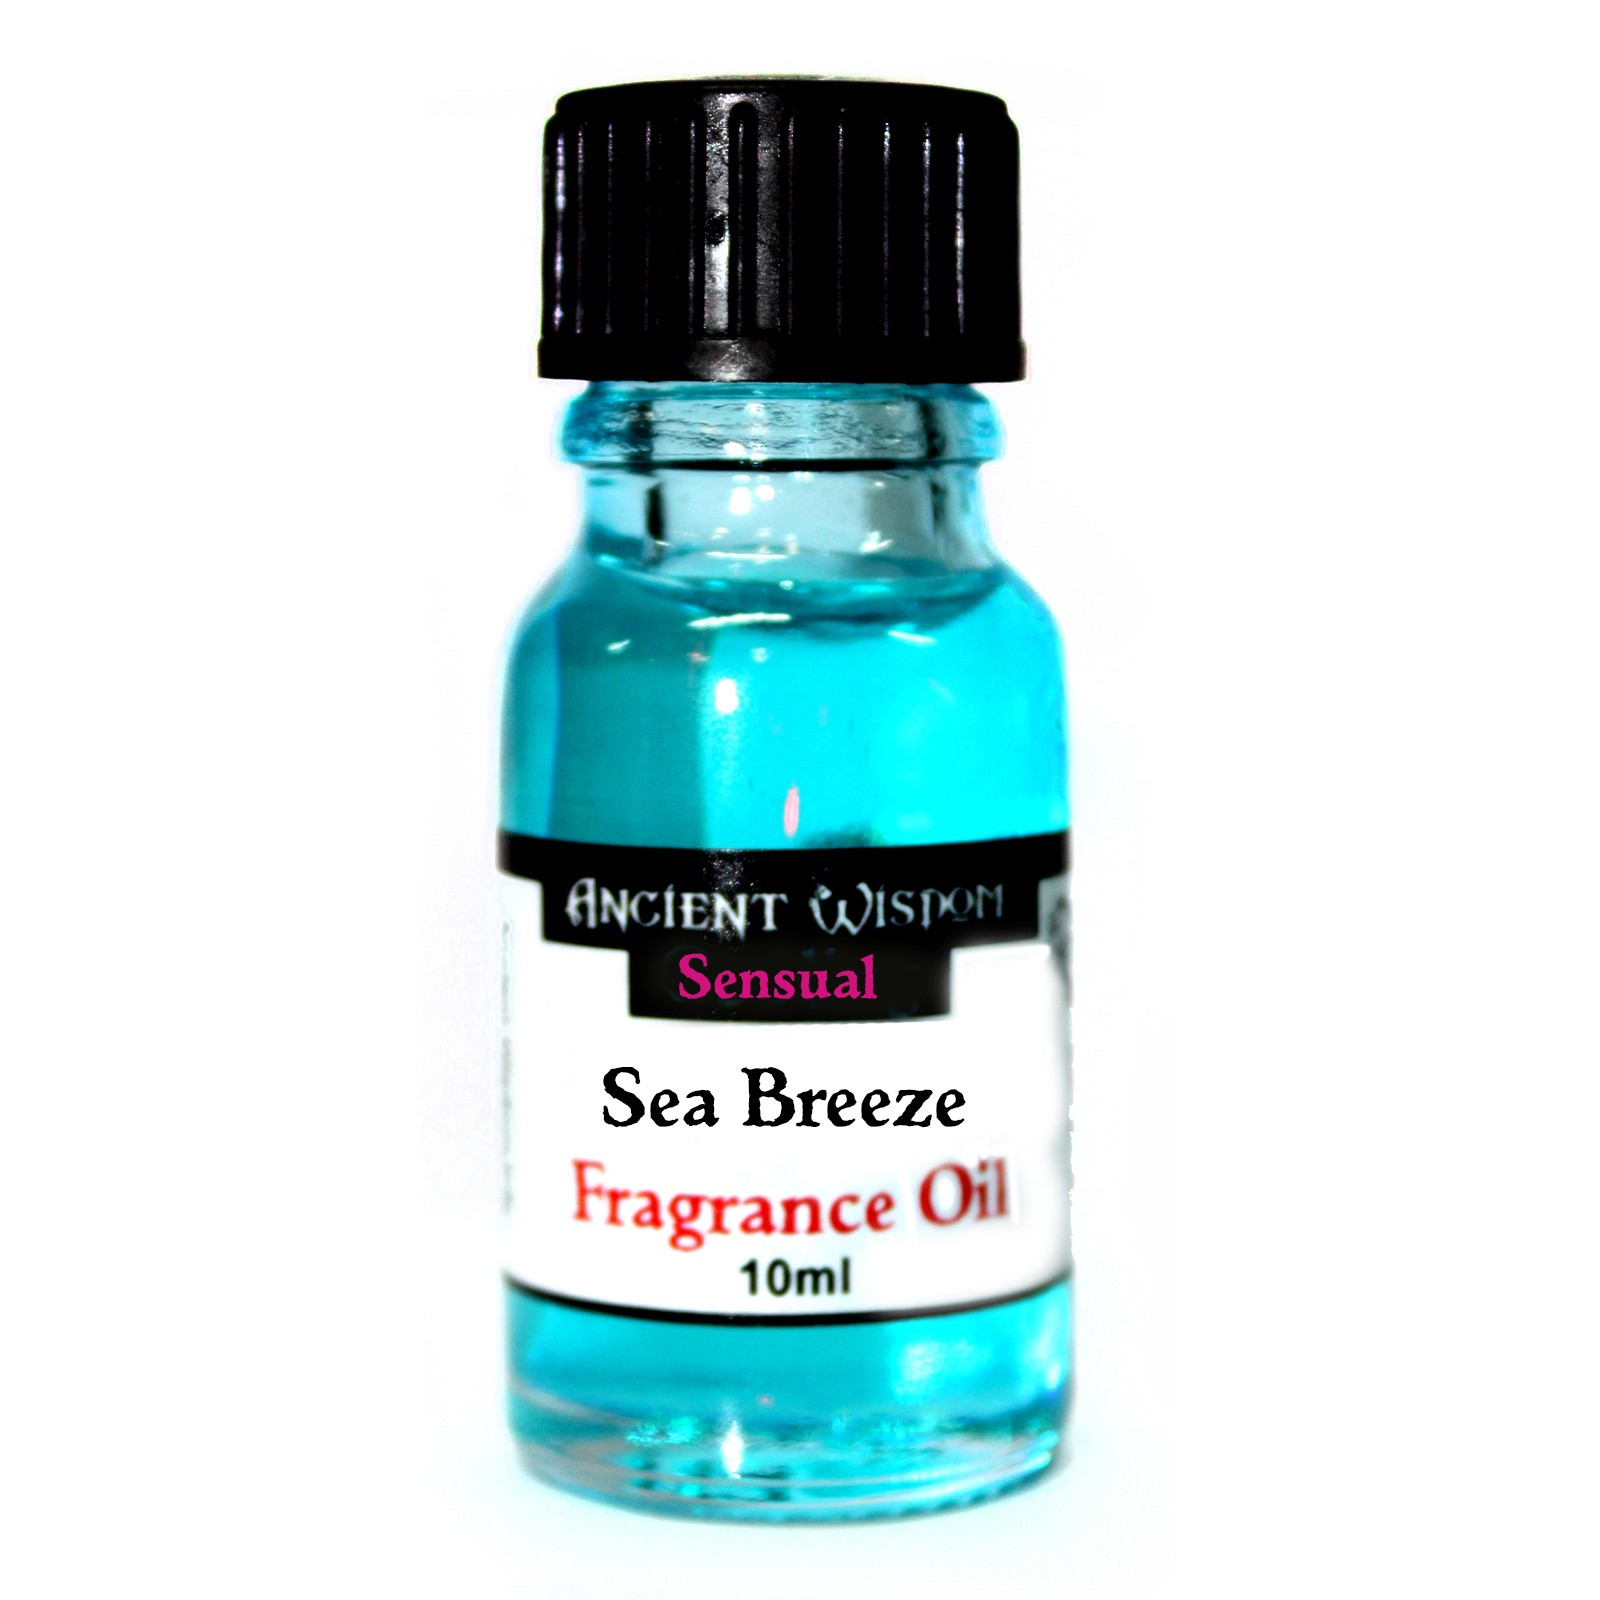 10ml Sea Breeze Fragrance Oil